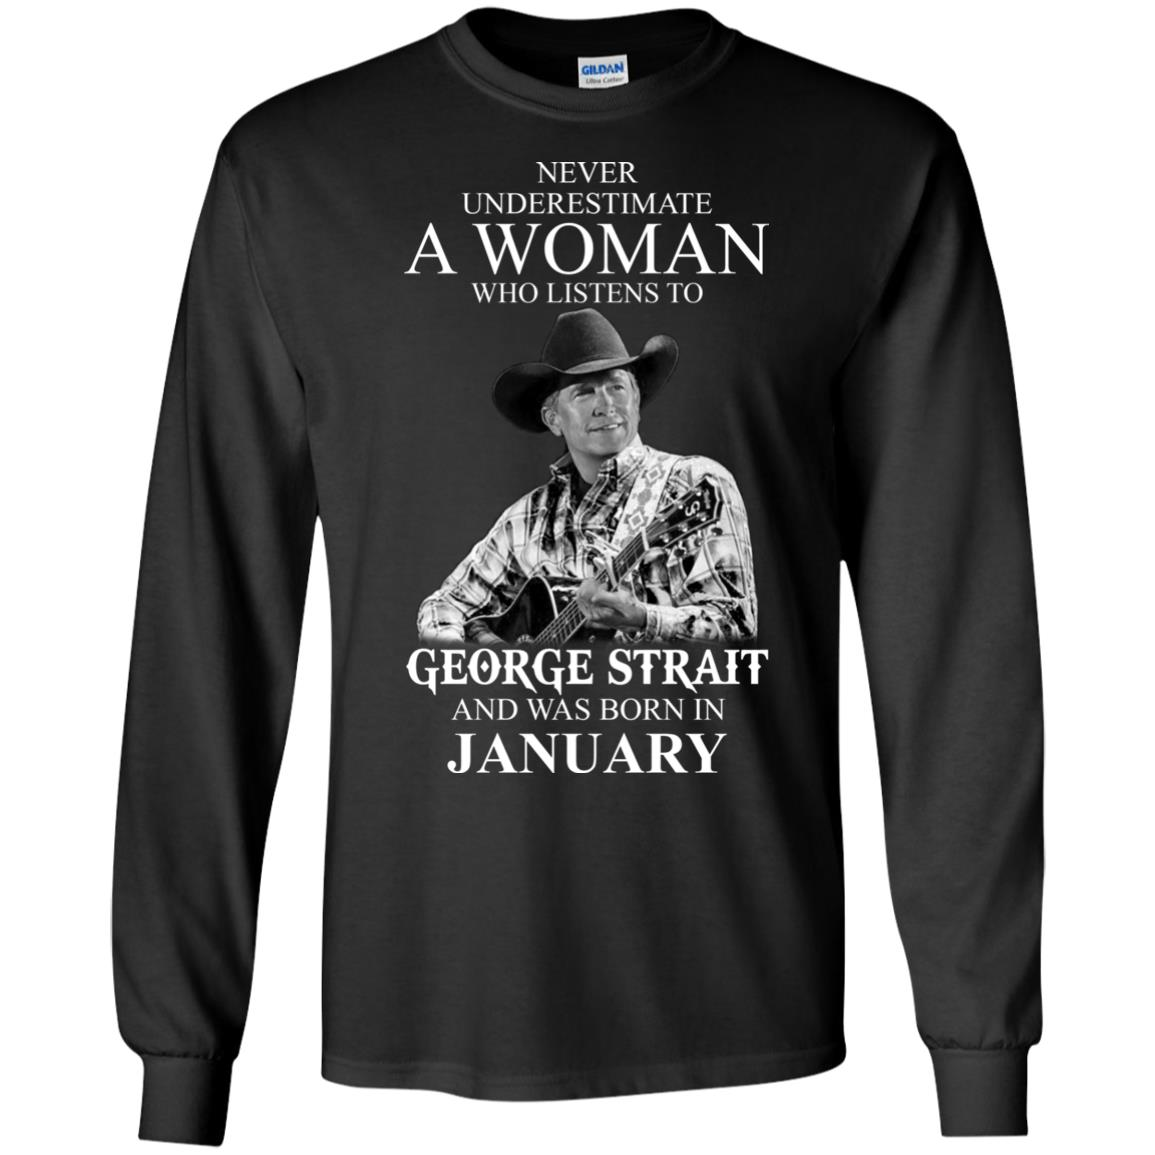 image 460 - Never Underestimate A Woman Who Listens To George Strait And Was Born In January shirt